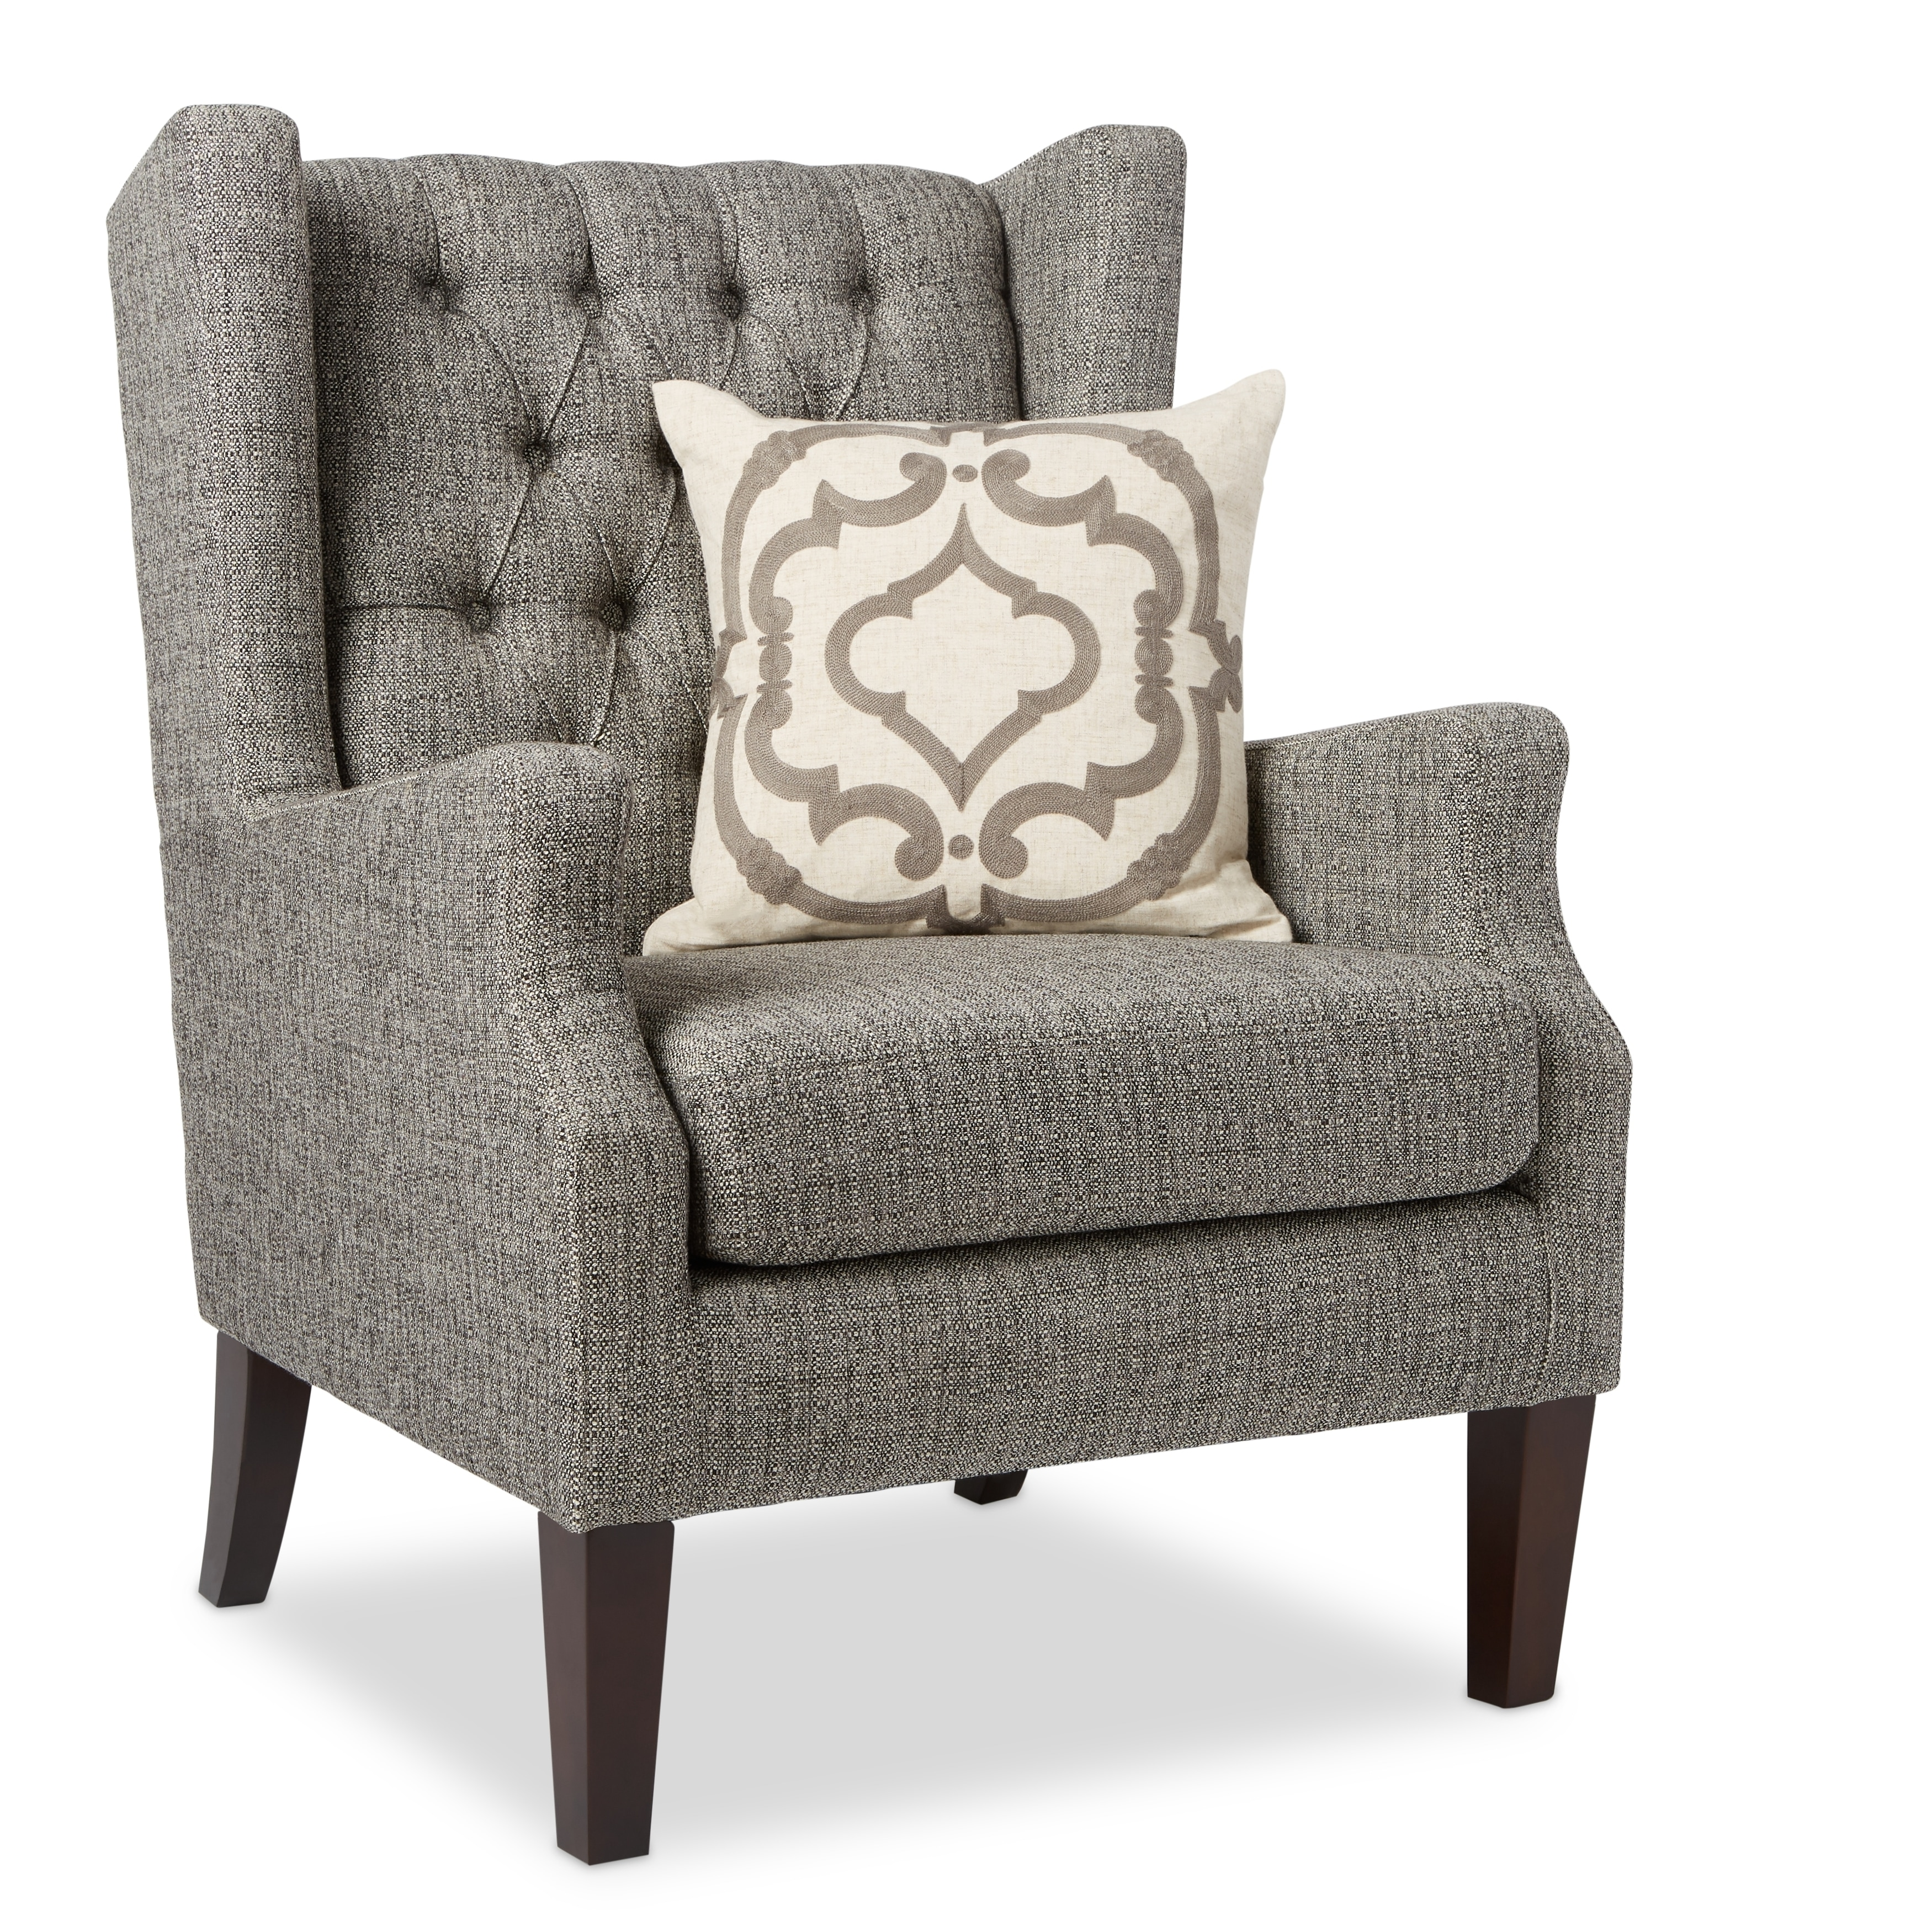 Bon Shop Stones U0026 Stripes Maxwell Grey Tufted Wingback Chair   Free Shipping  Today   Overstock.com   9759057